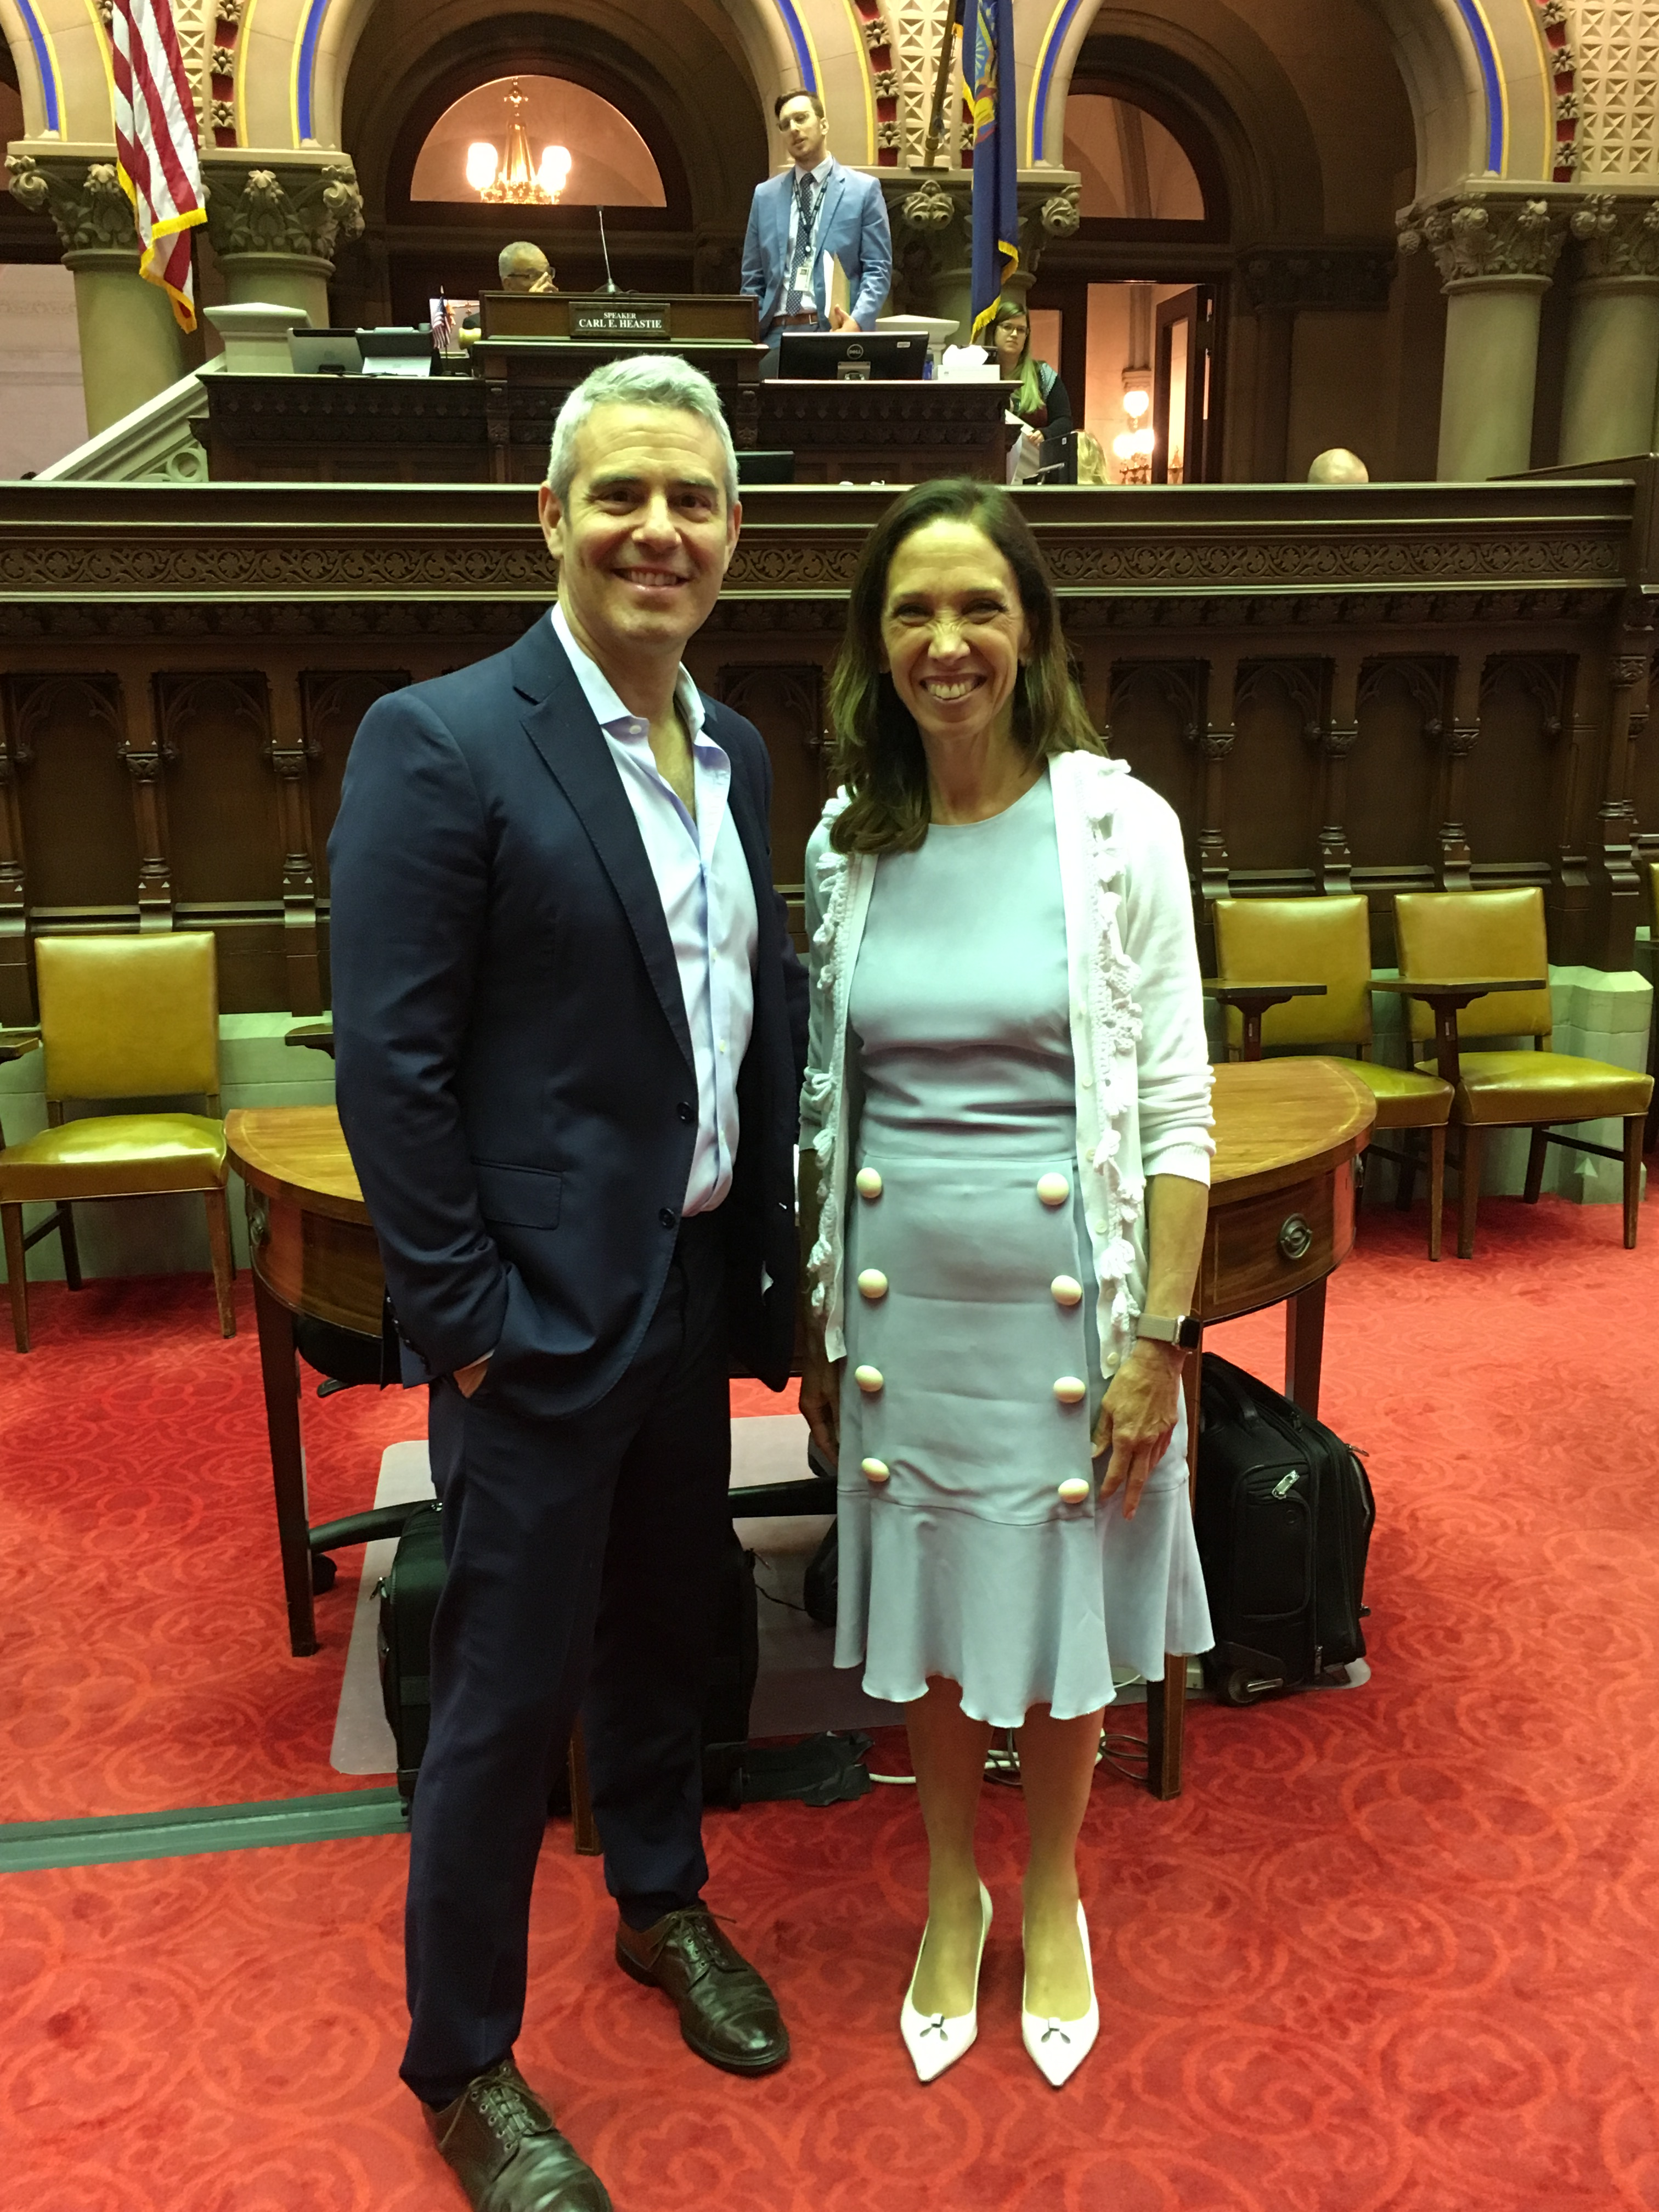 Amy Paulin meets with Bravo TV star Andy Cohen about his support for her bill, the Child Parent Security Act.